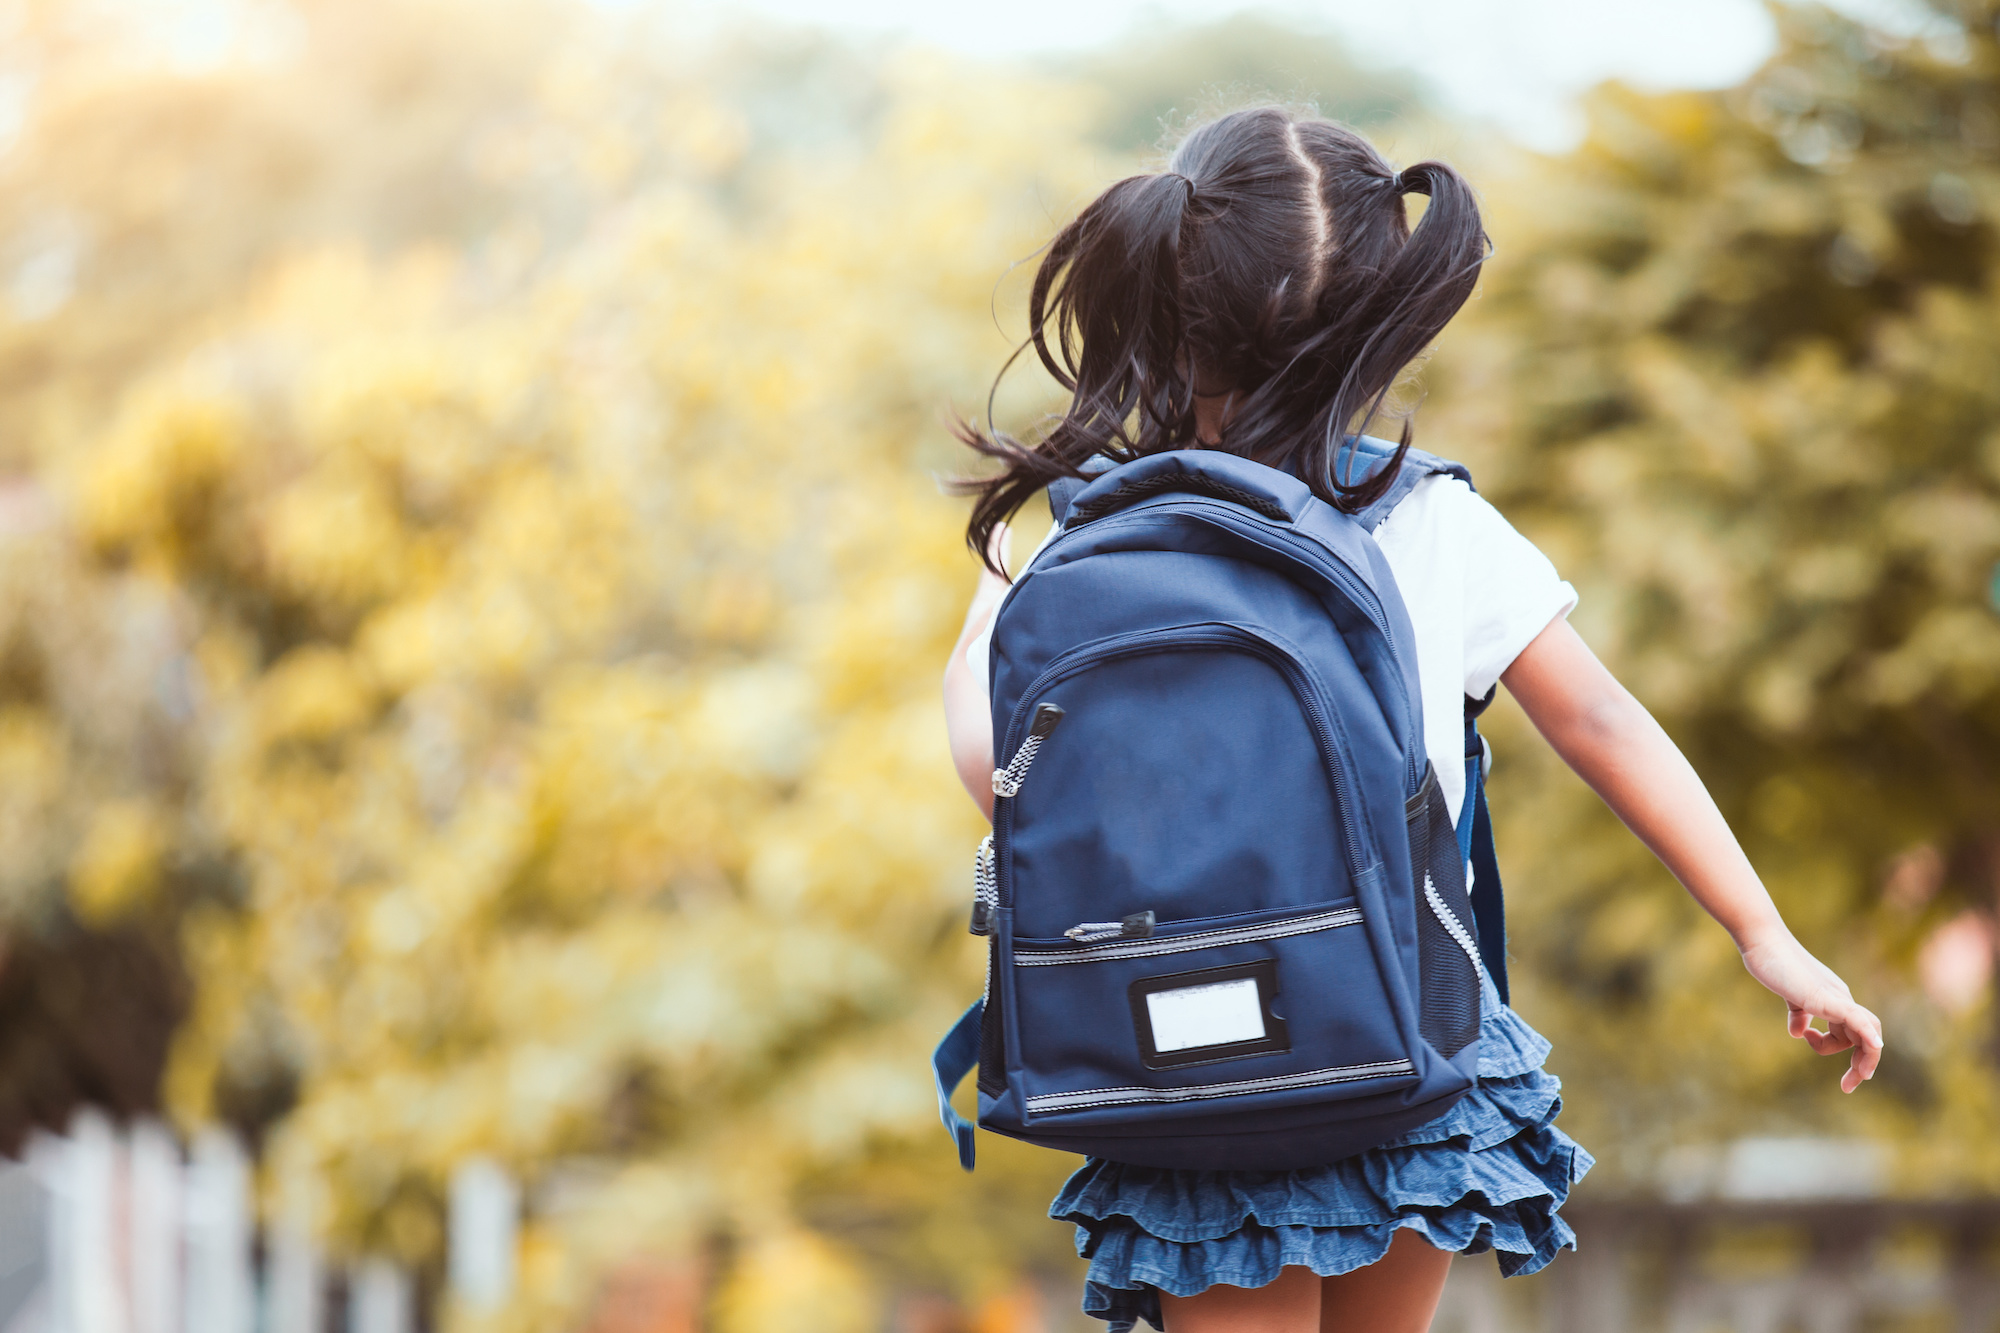 kid-with-hearing-aid-and-backpack